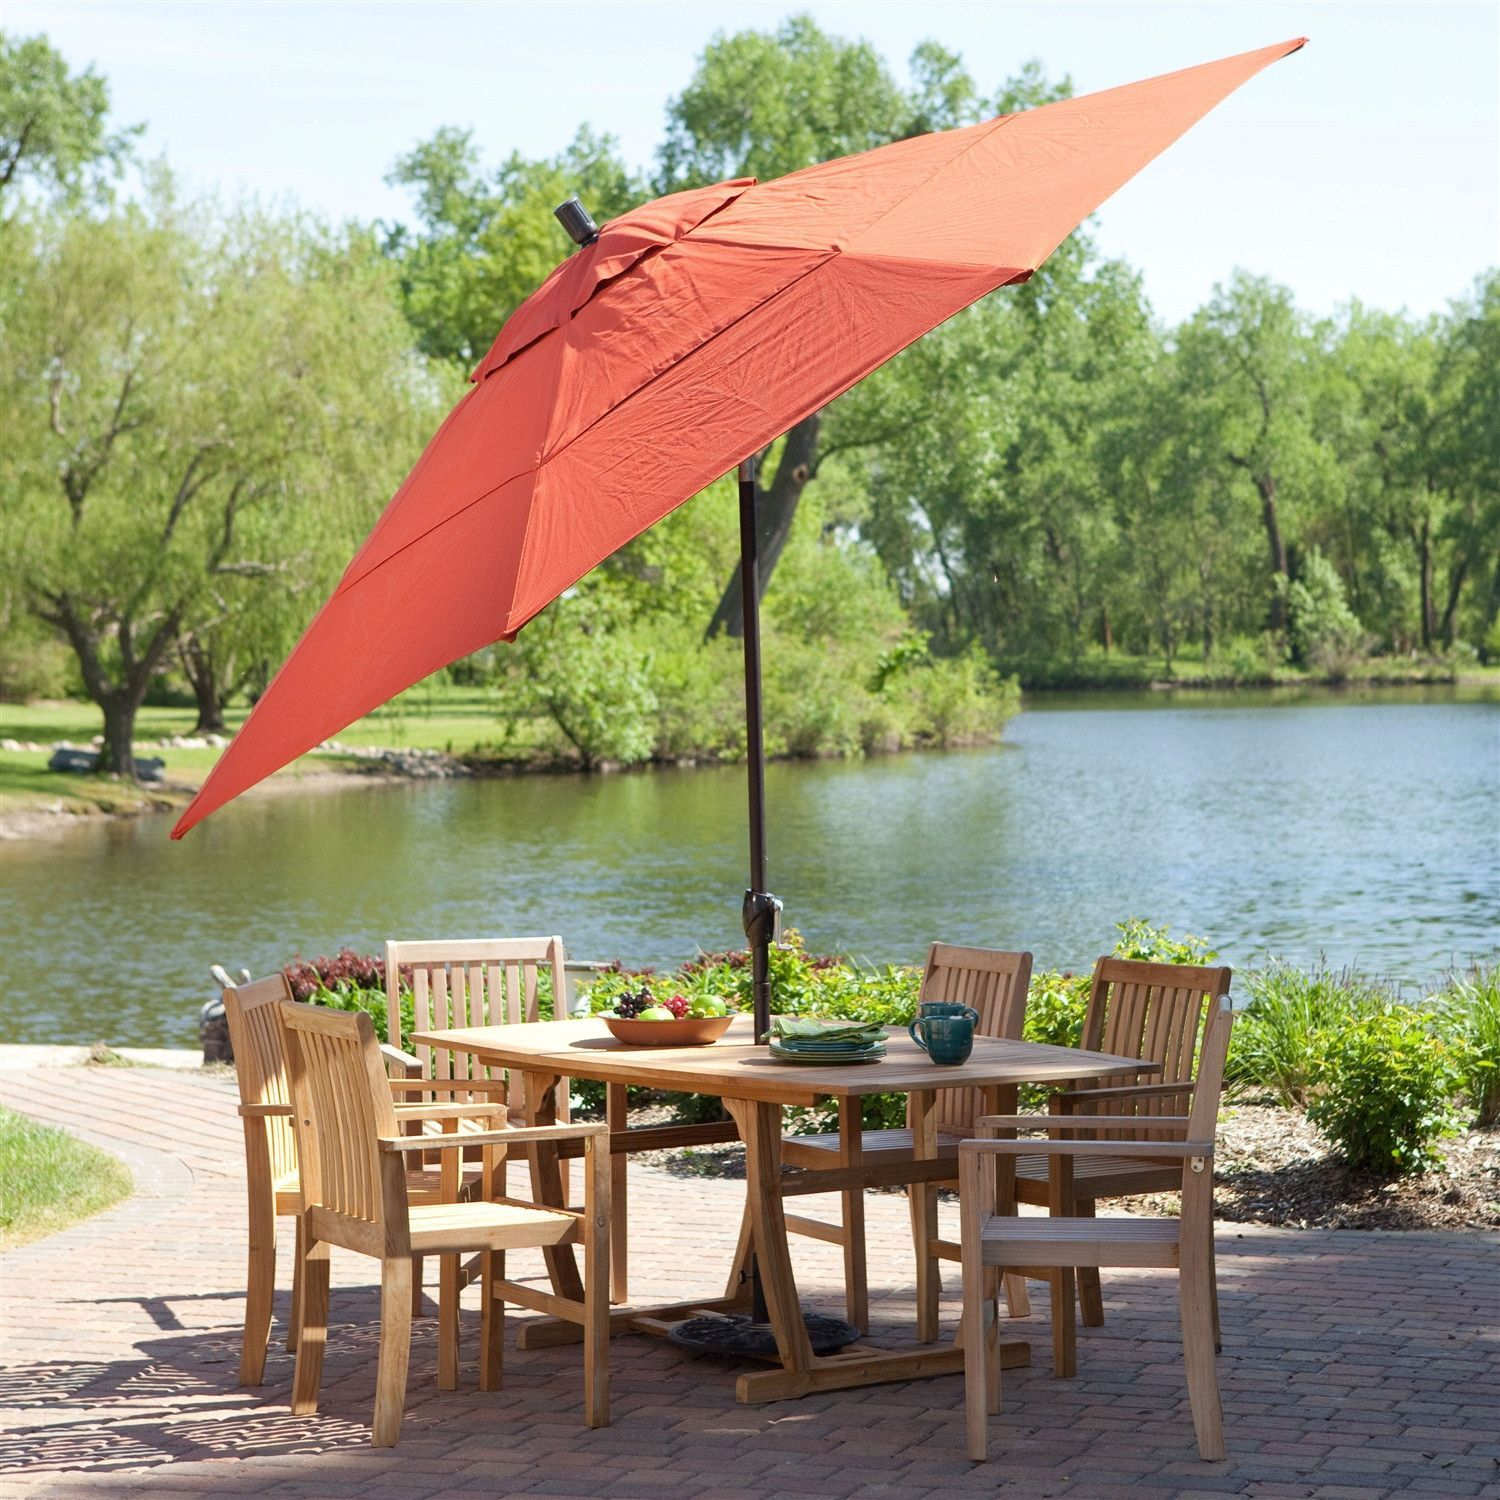 Push Button Tilt 11-Ft Patio Umbrella with Brick Red Orange Canopy & Push Button Tilt 11-Ft Patio Umbrella with Brick Red Orange Canopy ...